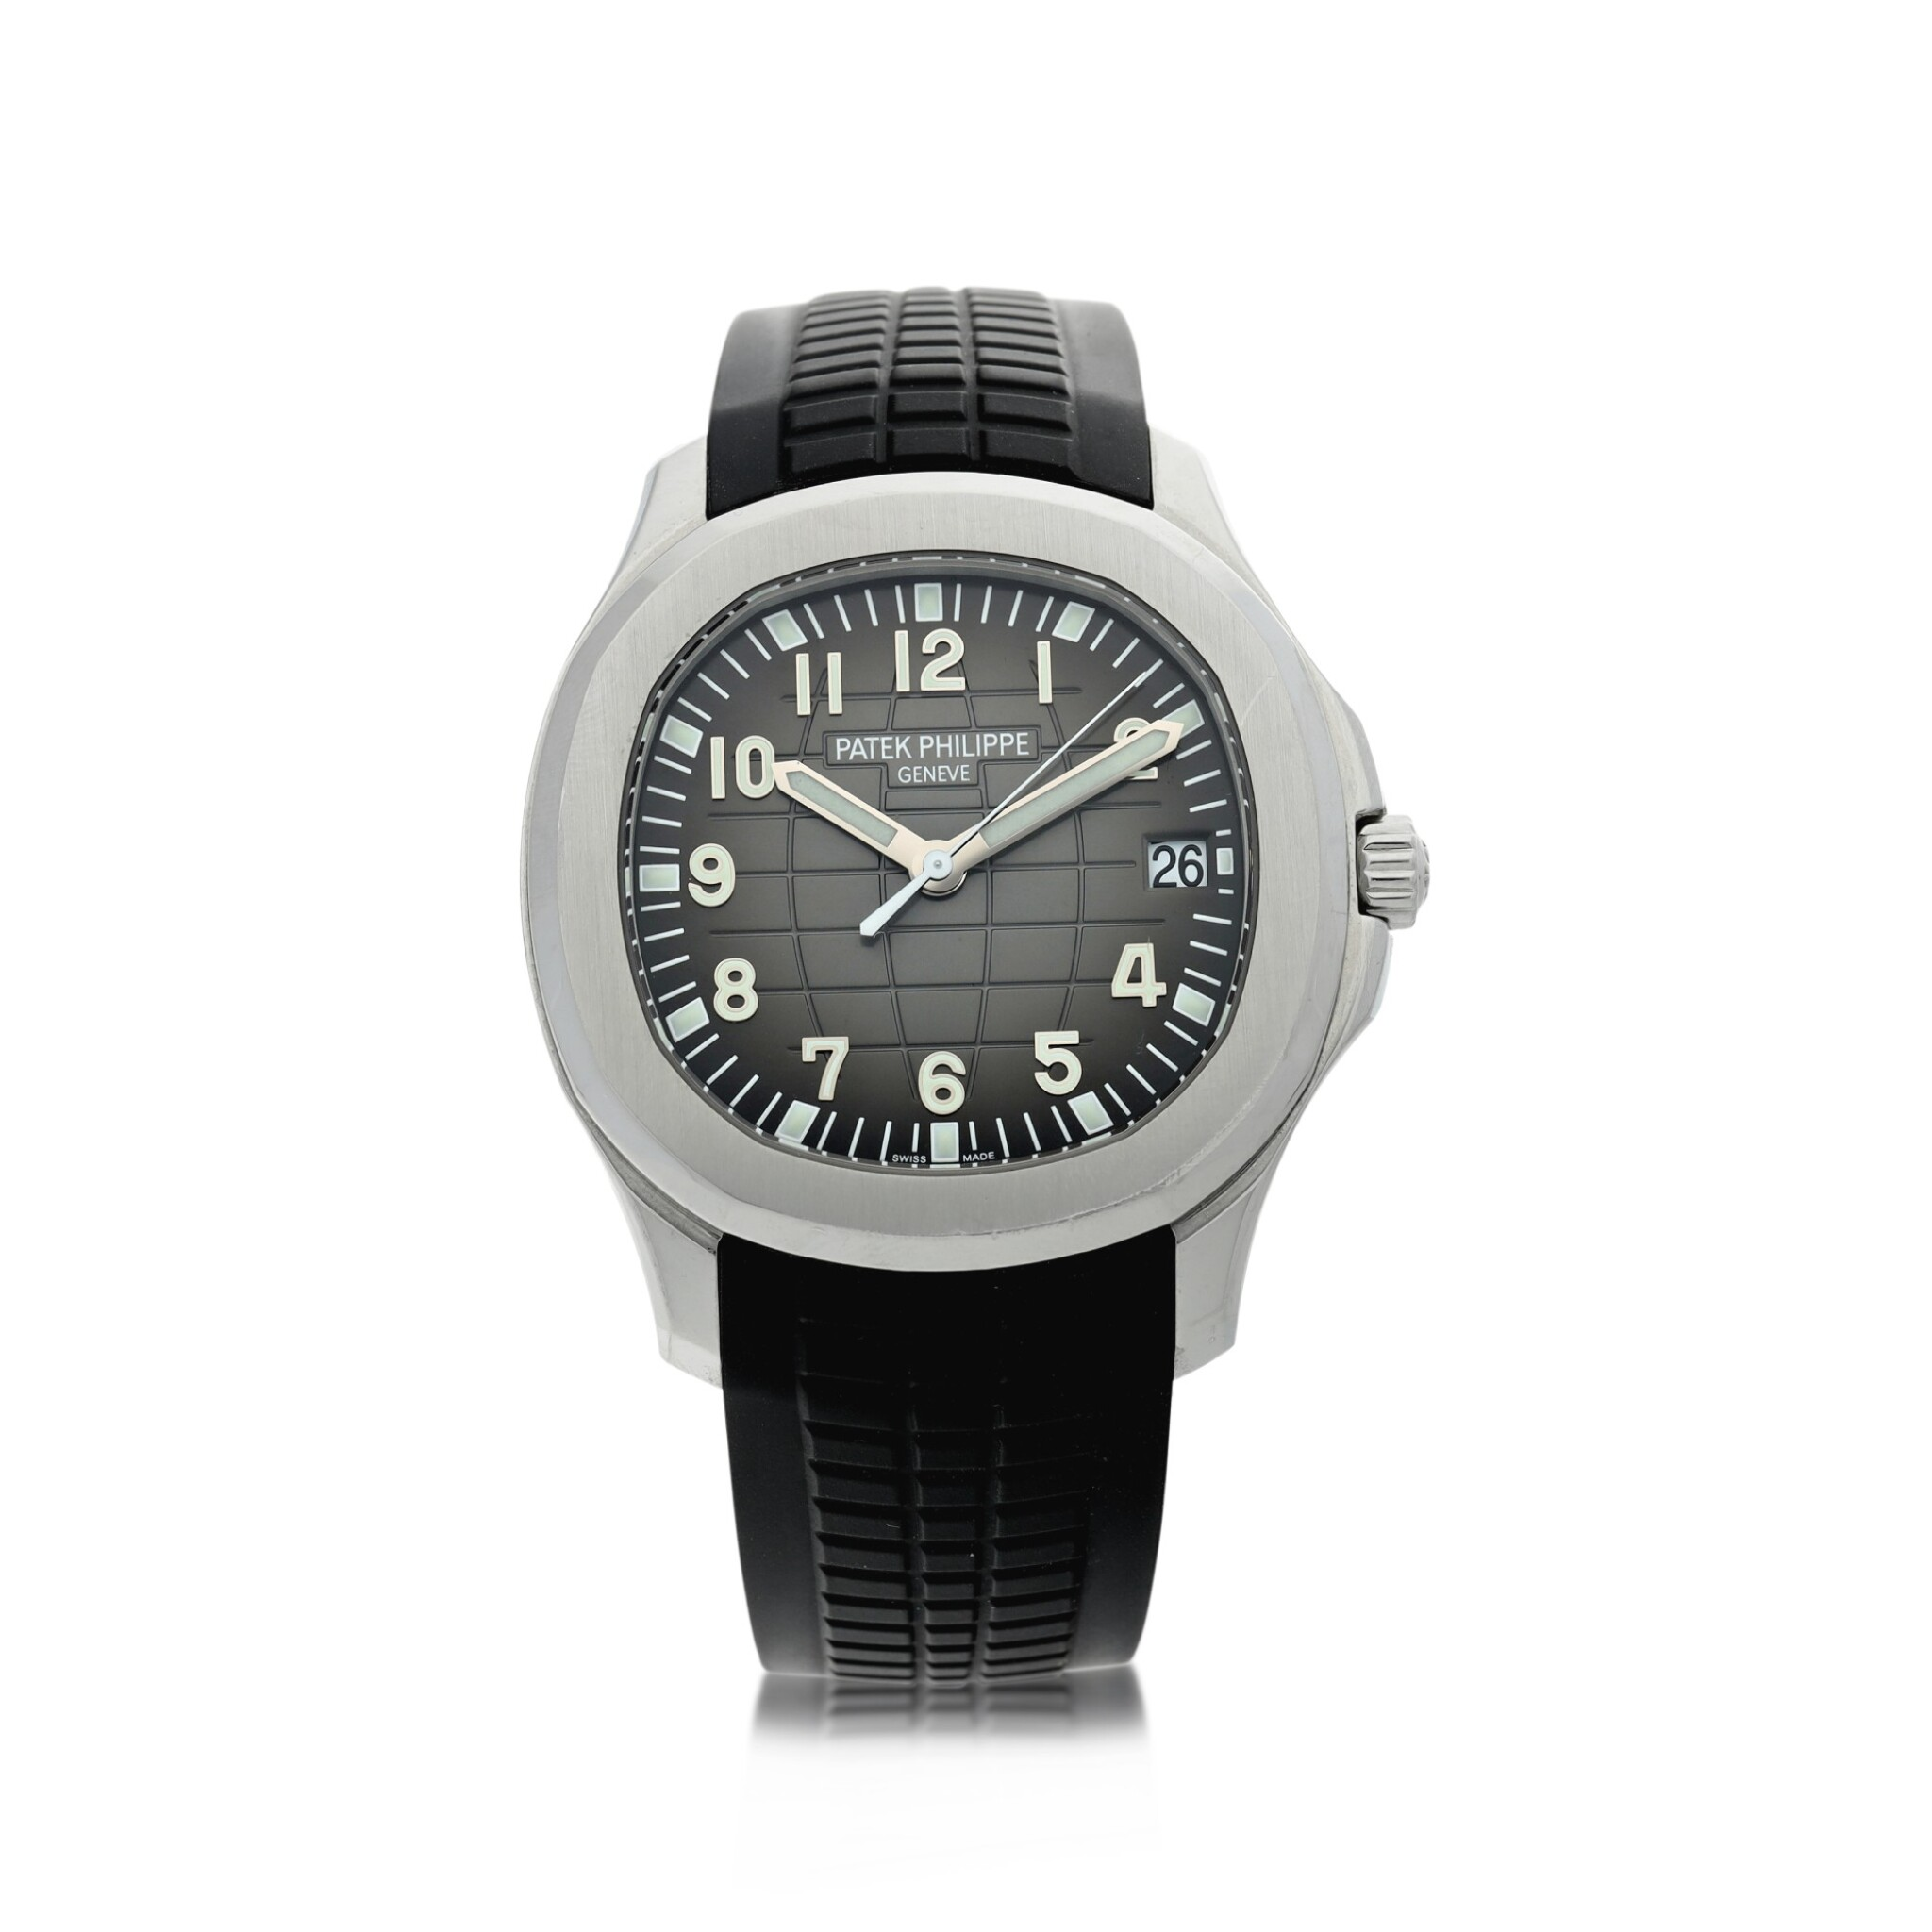 REFERENCE 5167A-001 AQUANAUT A STAINLESS STEEL AUTOMATIC WRISTWATCH WITH DATE, CIRCA 2015